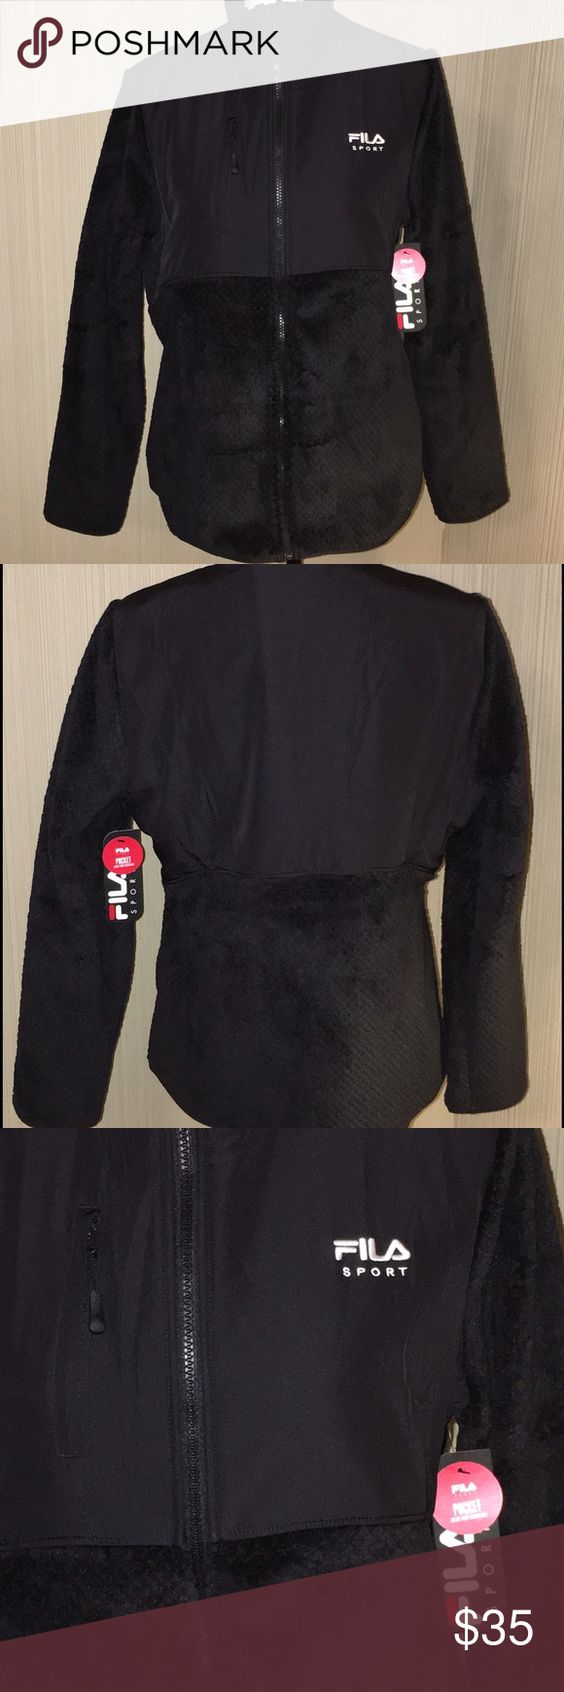 New Fila Sport Soft Fleece Jacket Large New with tags!!! Super ...